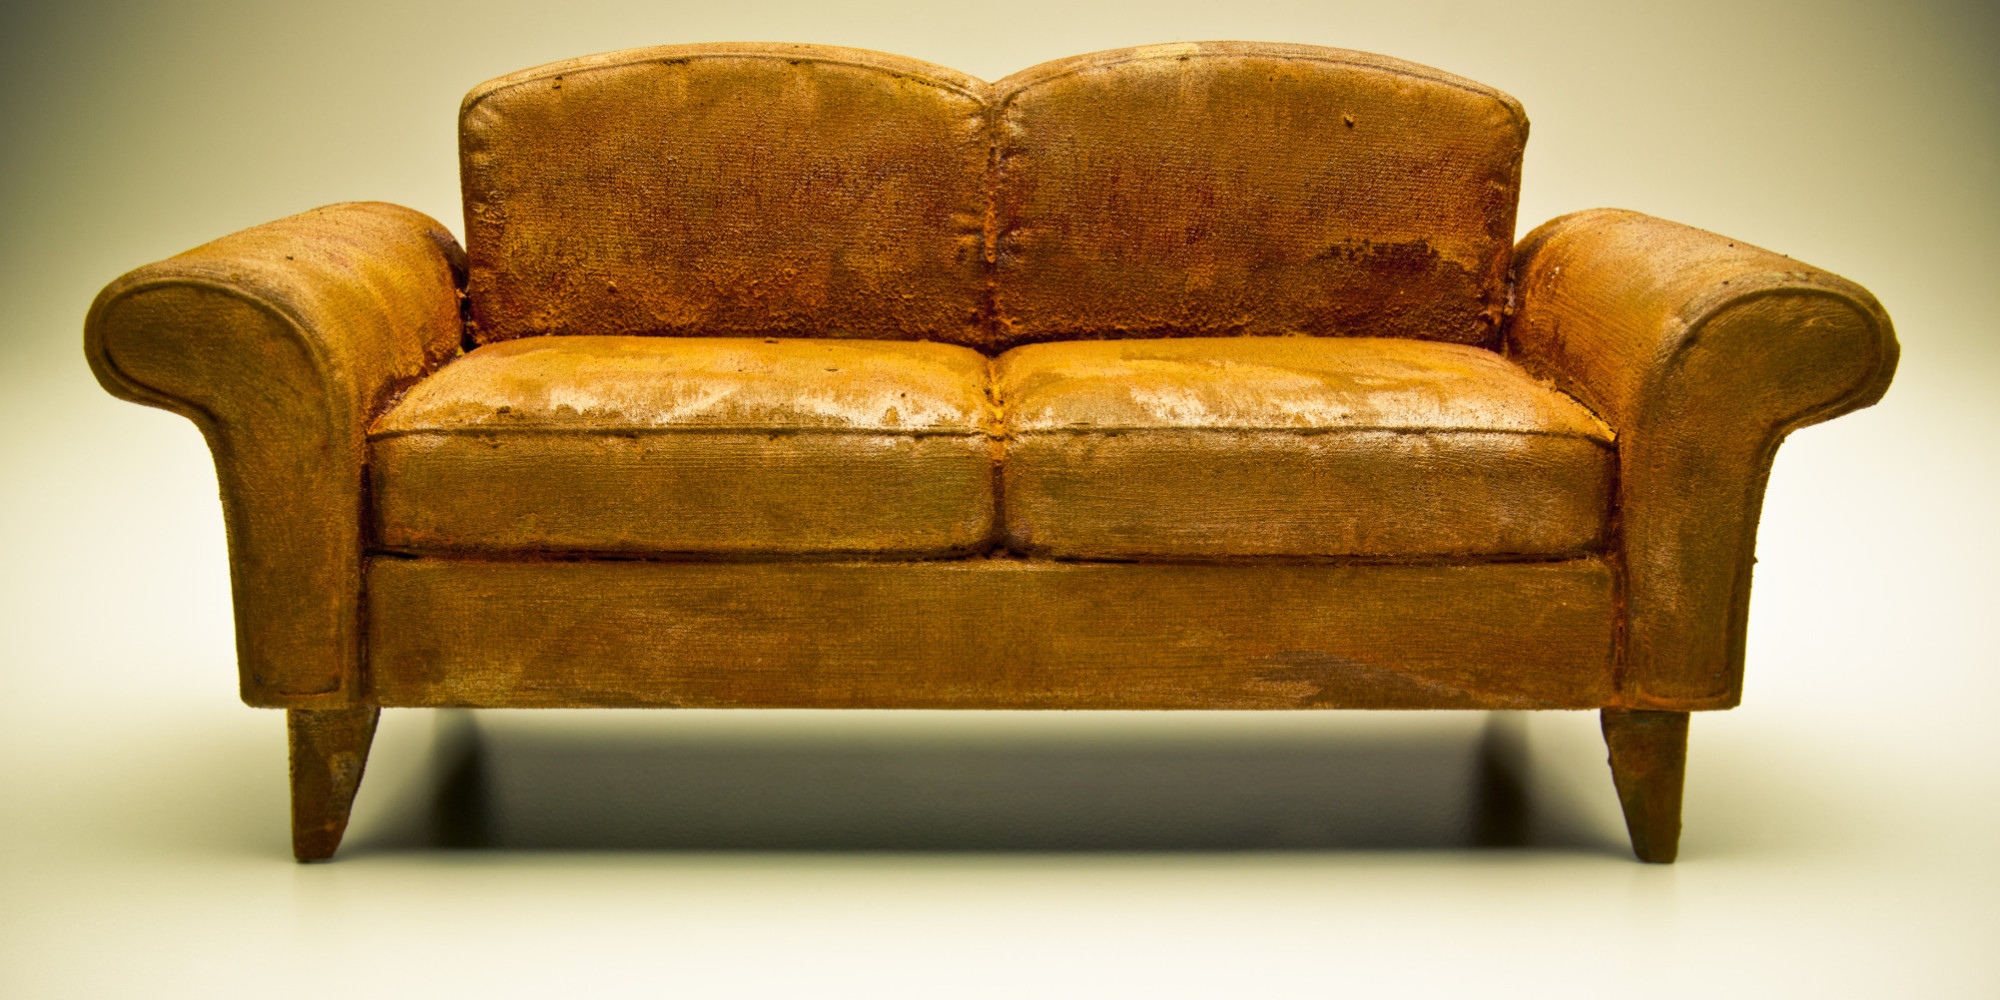 Couh Flame Retardant In Couches Could Be Lowering Kids' Iqs